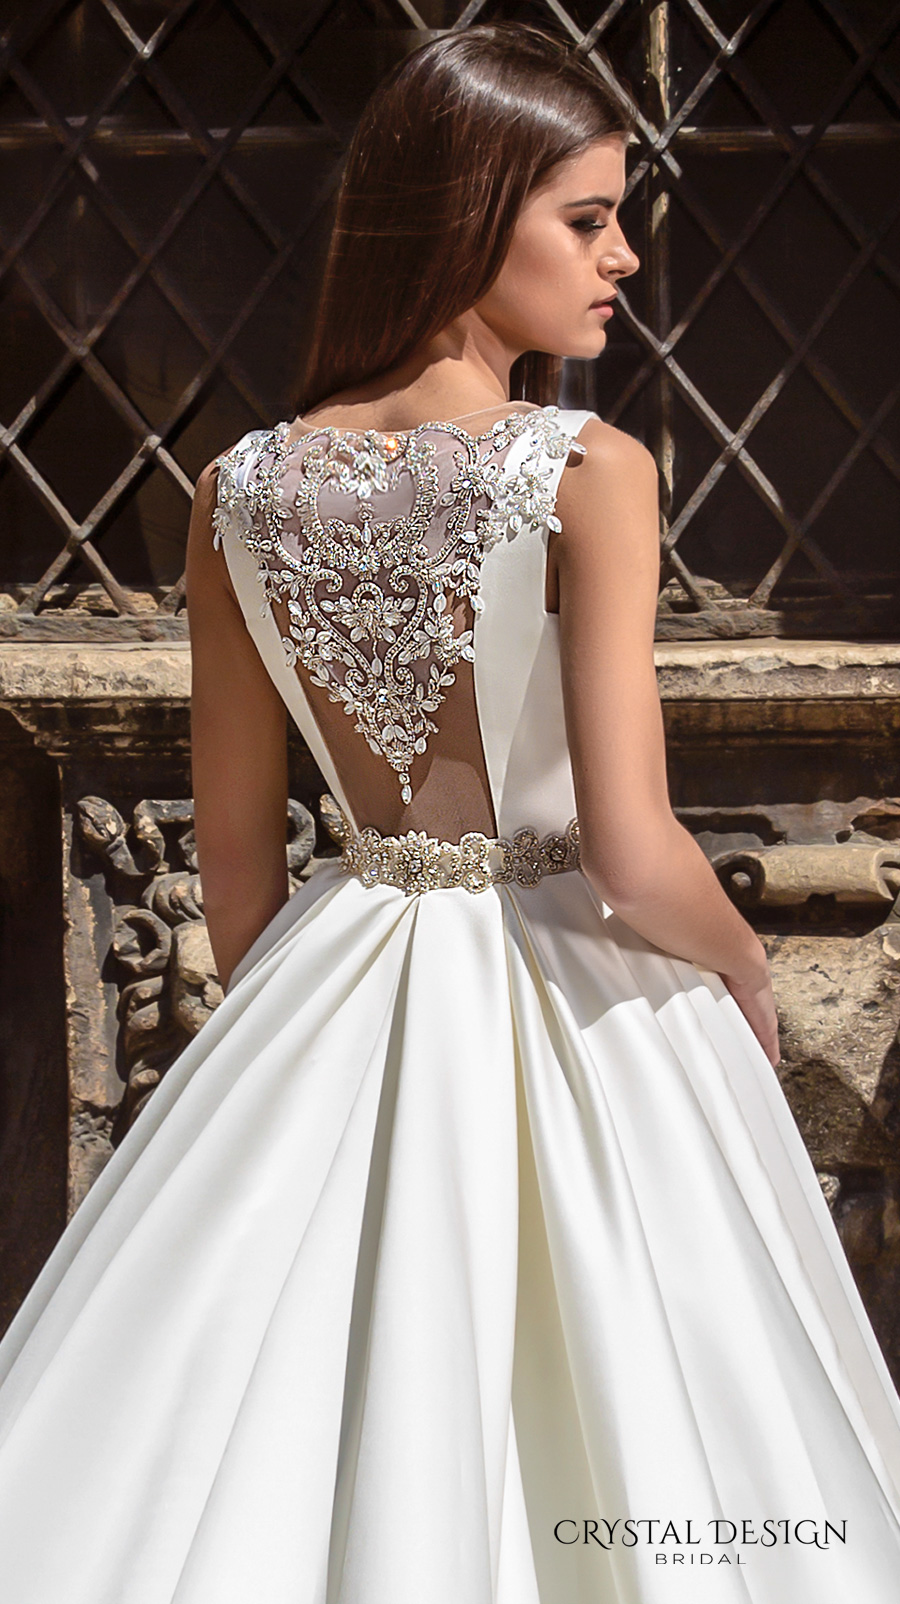 Crystal design 2016 wedding dresses wedding inspirasi for Crystal design wedding dresses